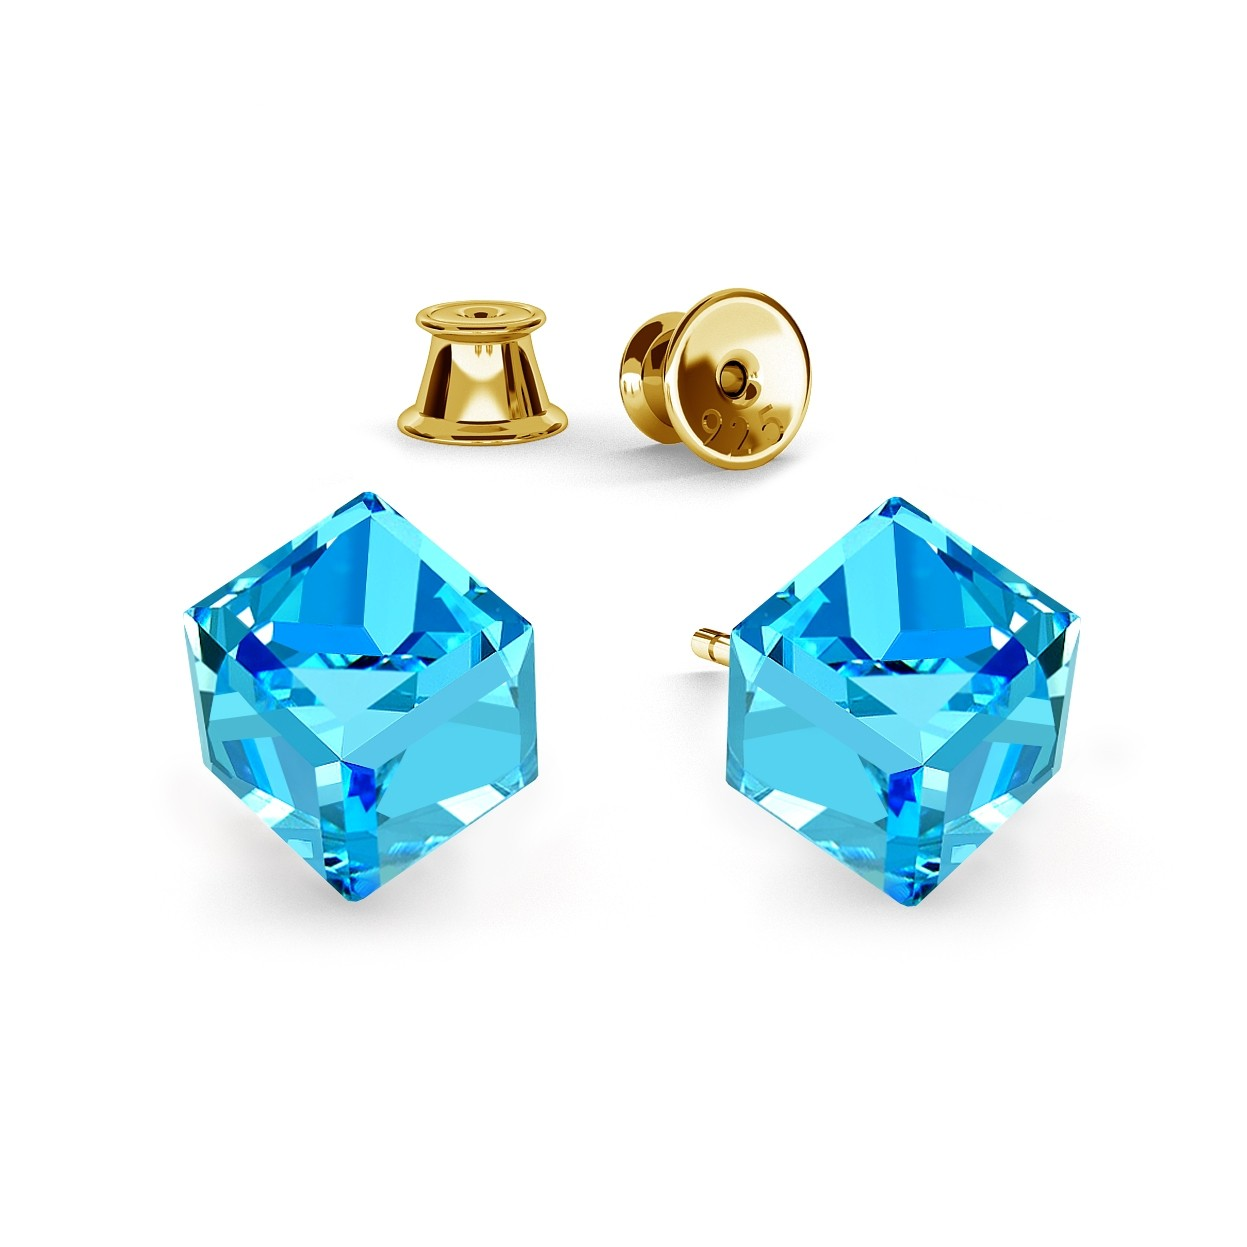 CUBE EARRINGS, SWAROVSKI 4841 MM 6, RHODIUM OR GOLD PLATED